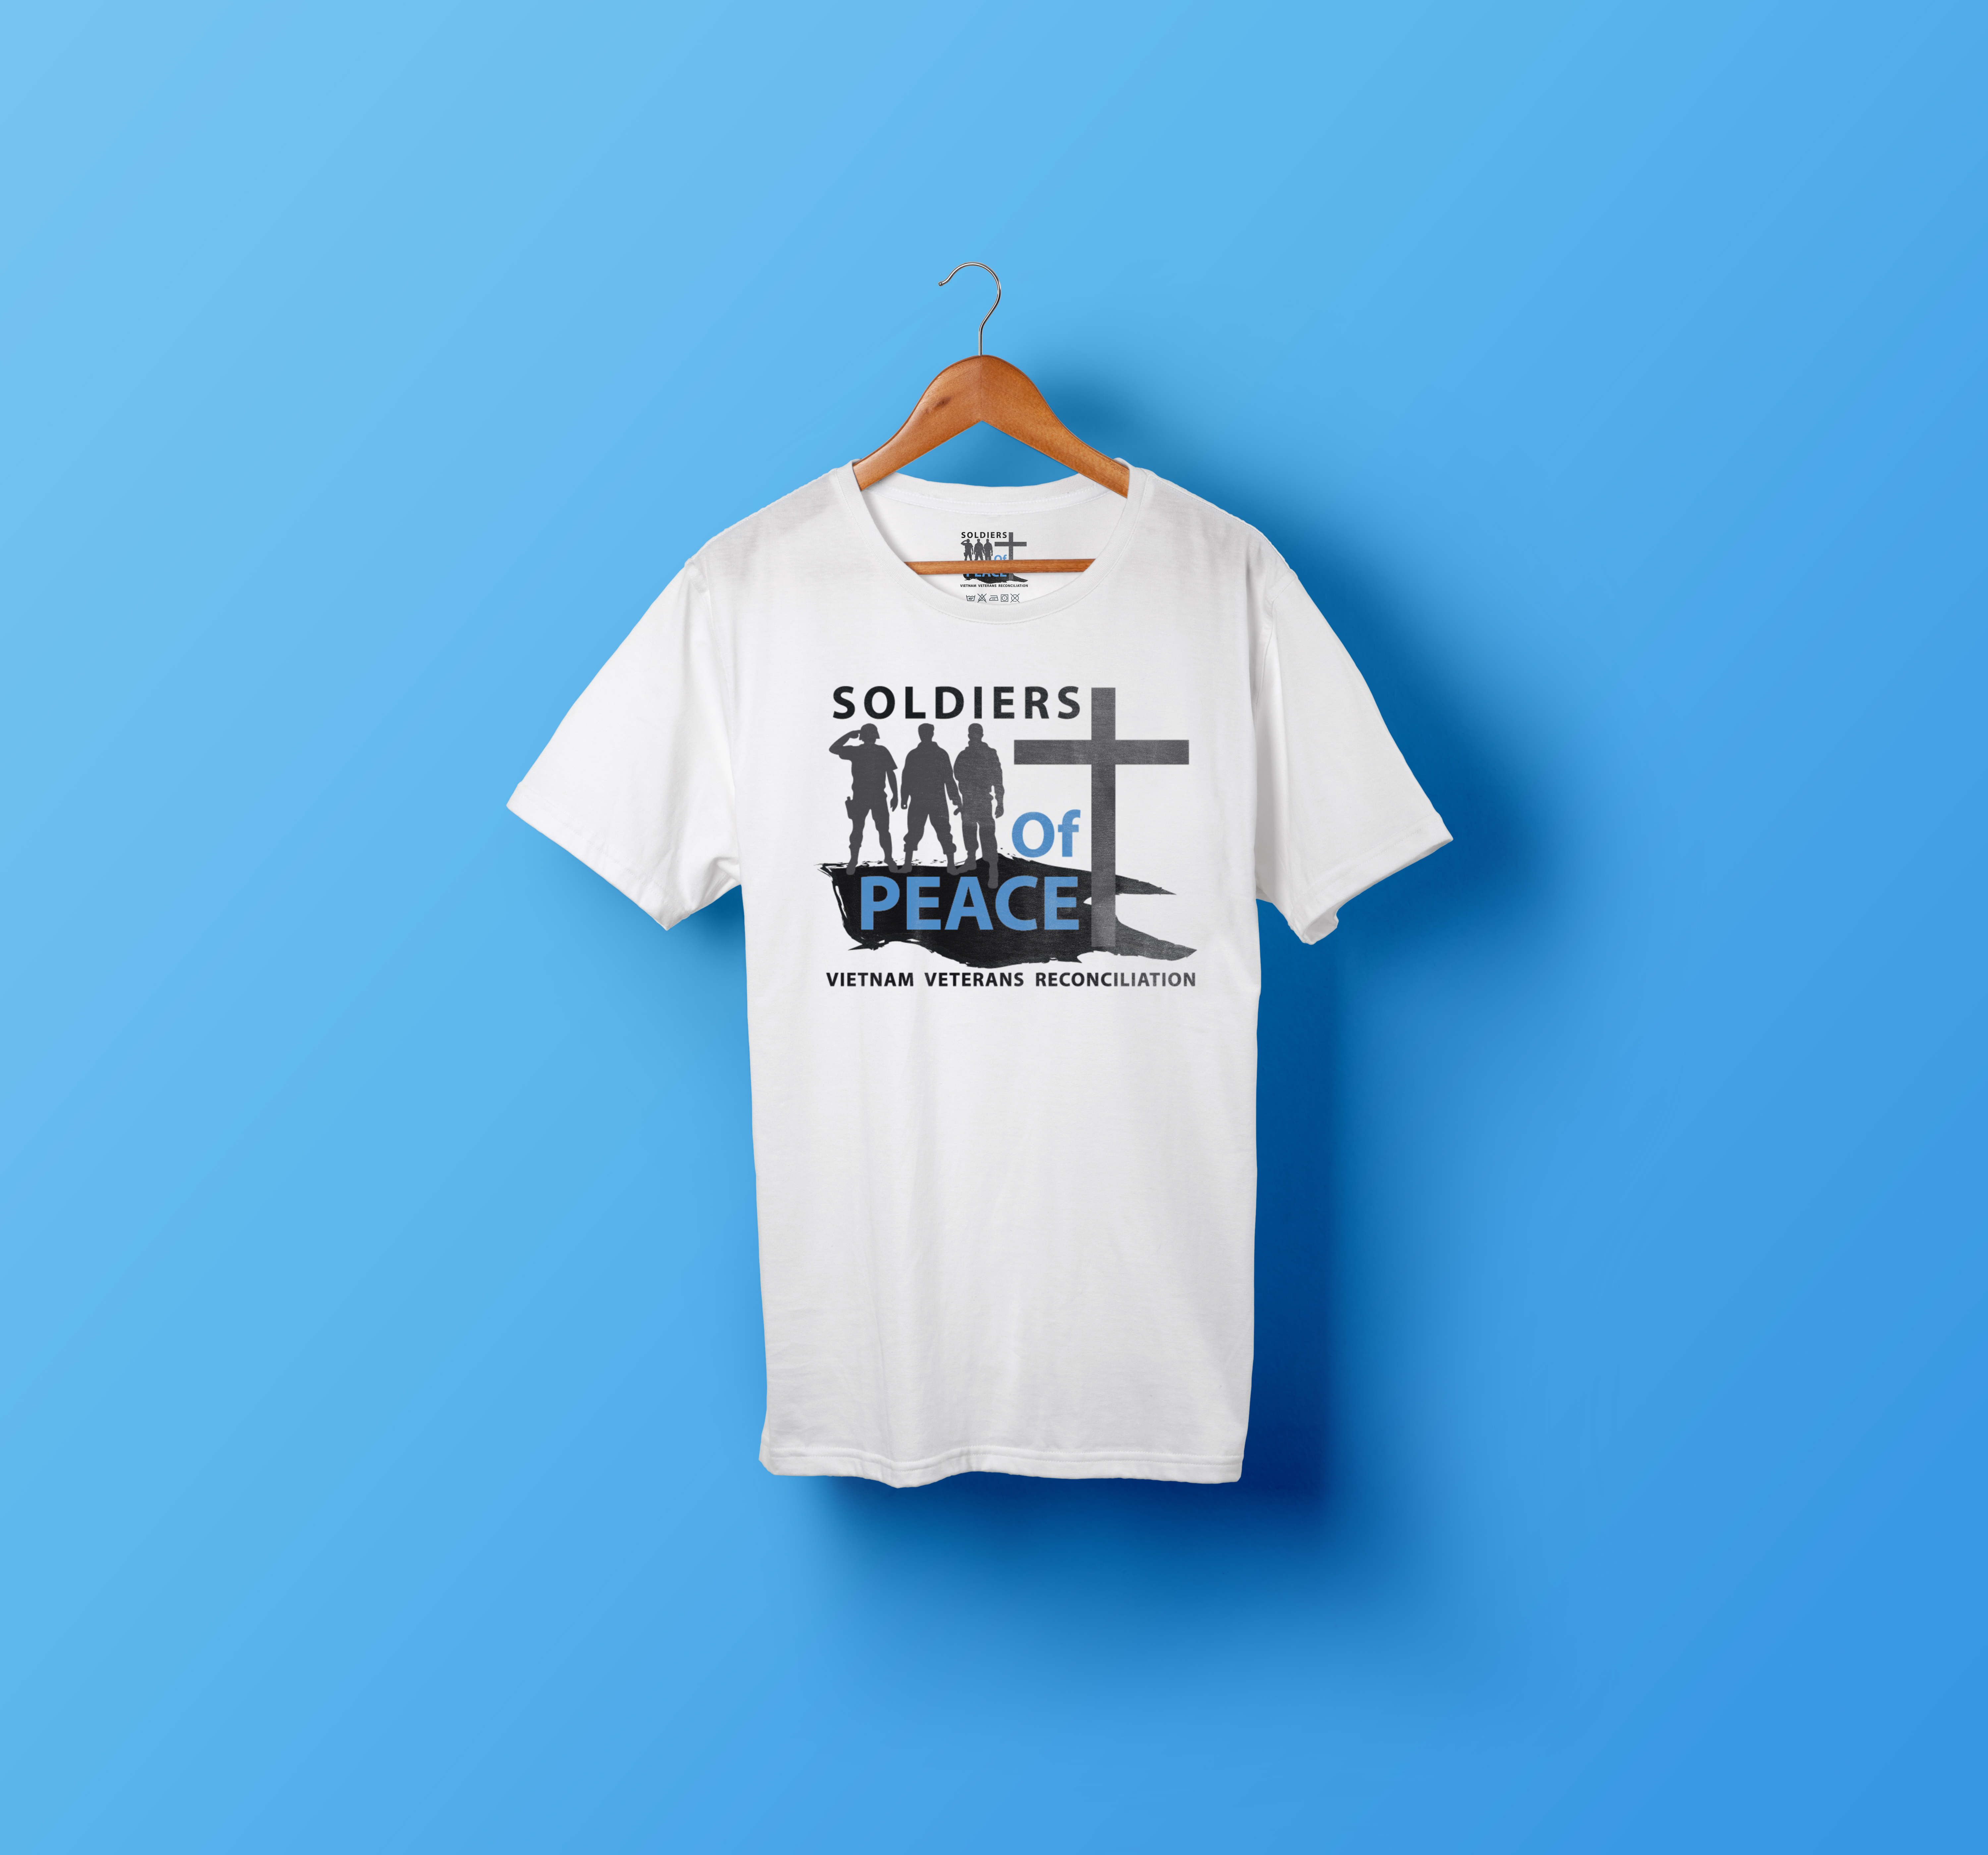 Soldiers of Peace - Tshirt Design